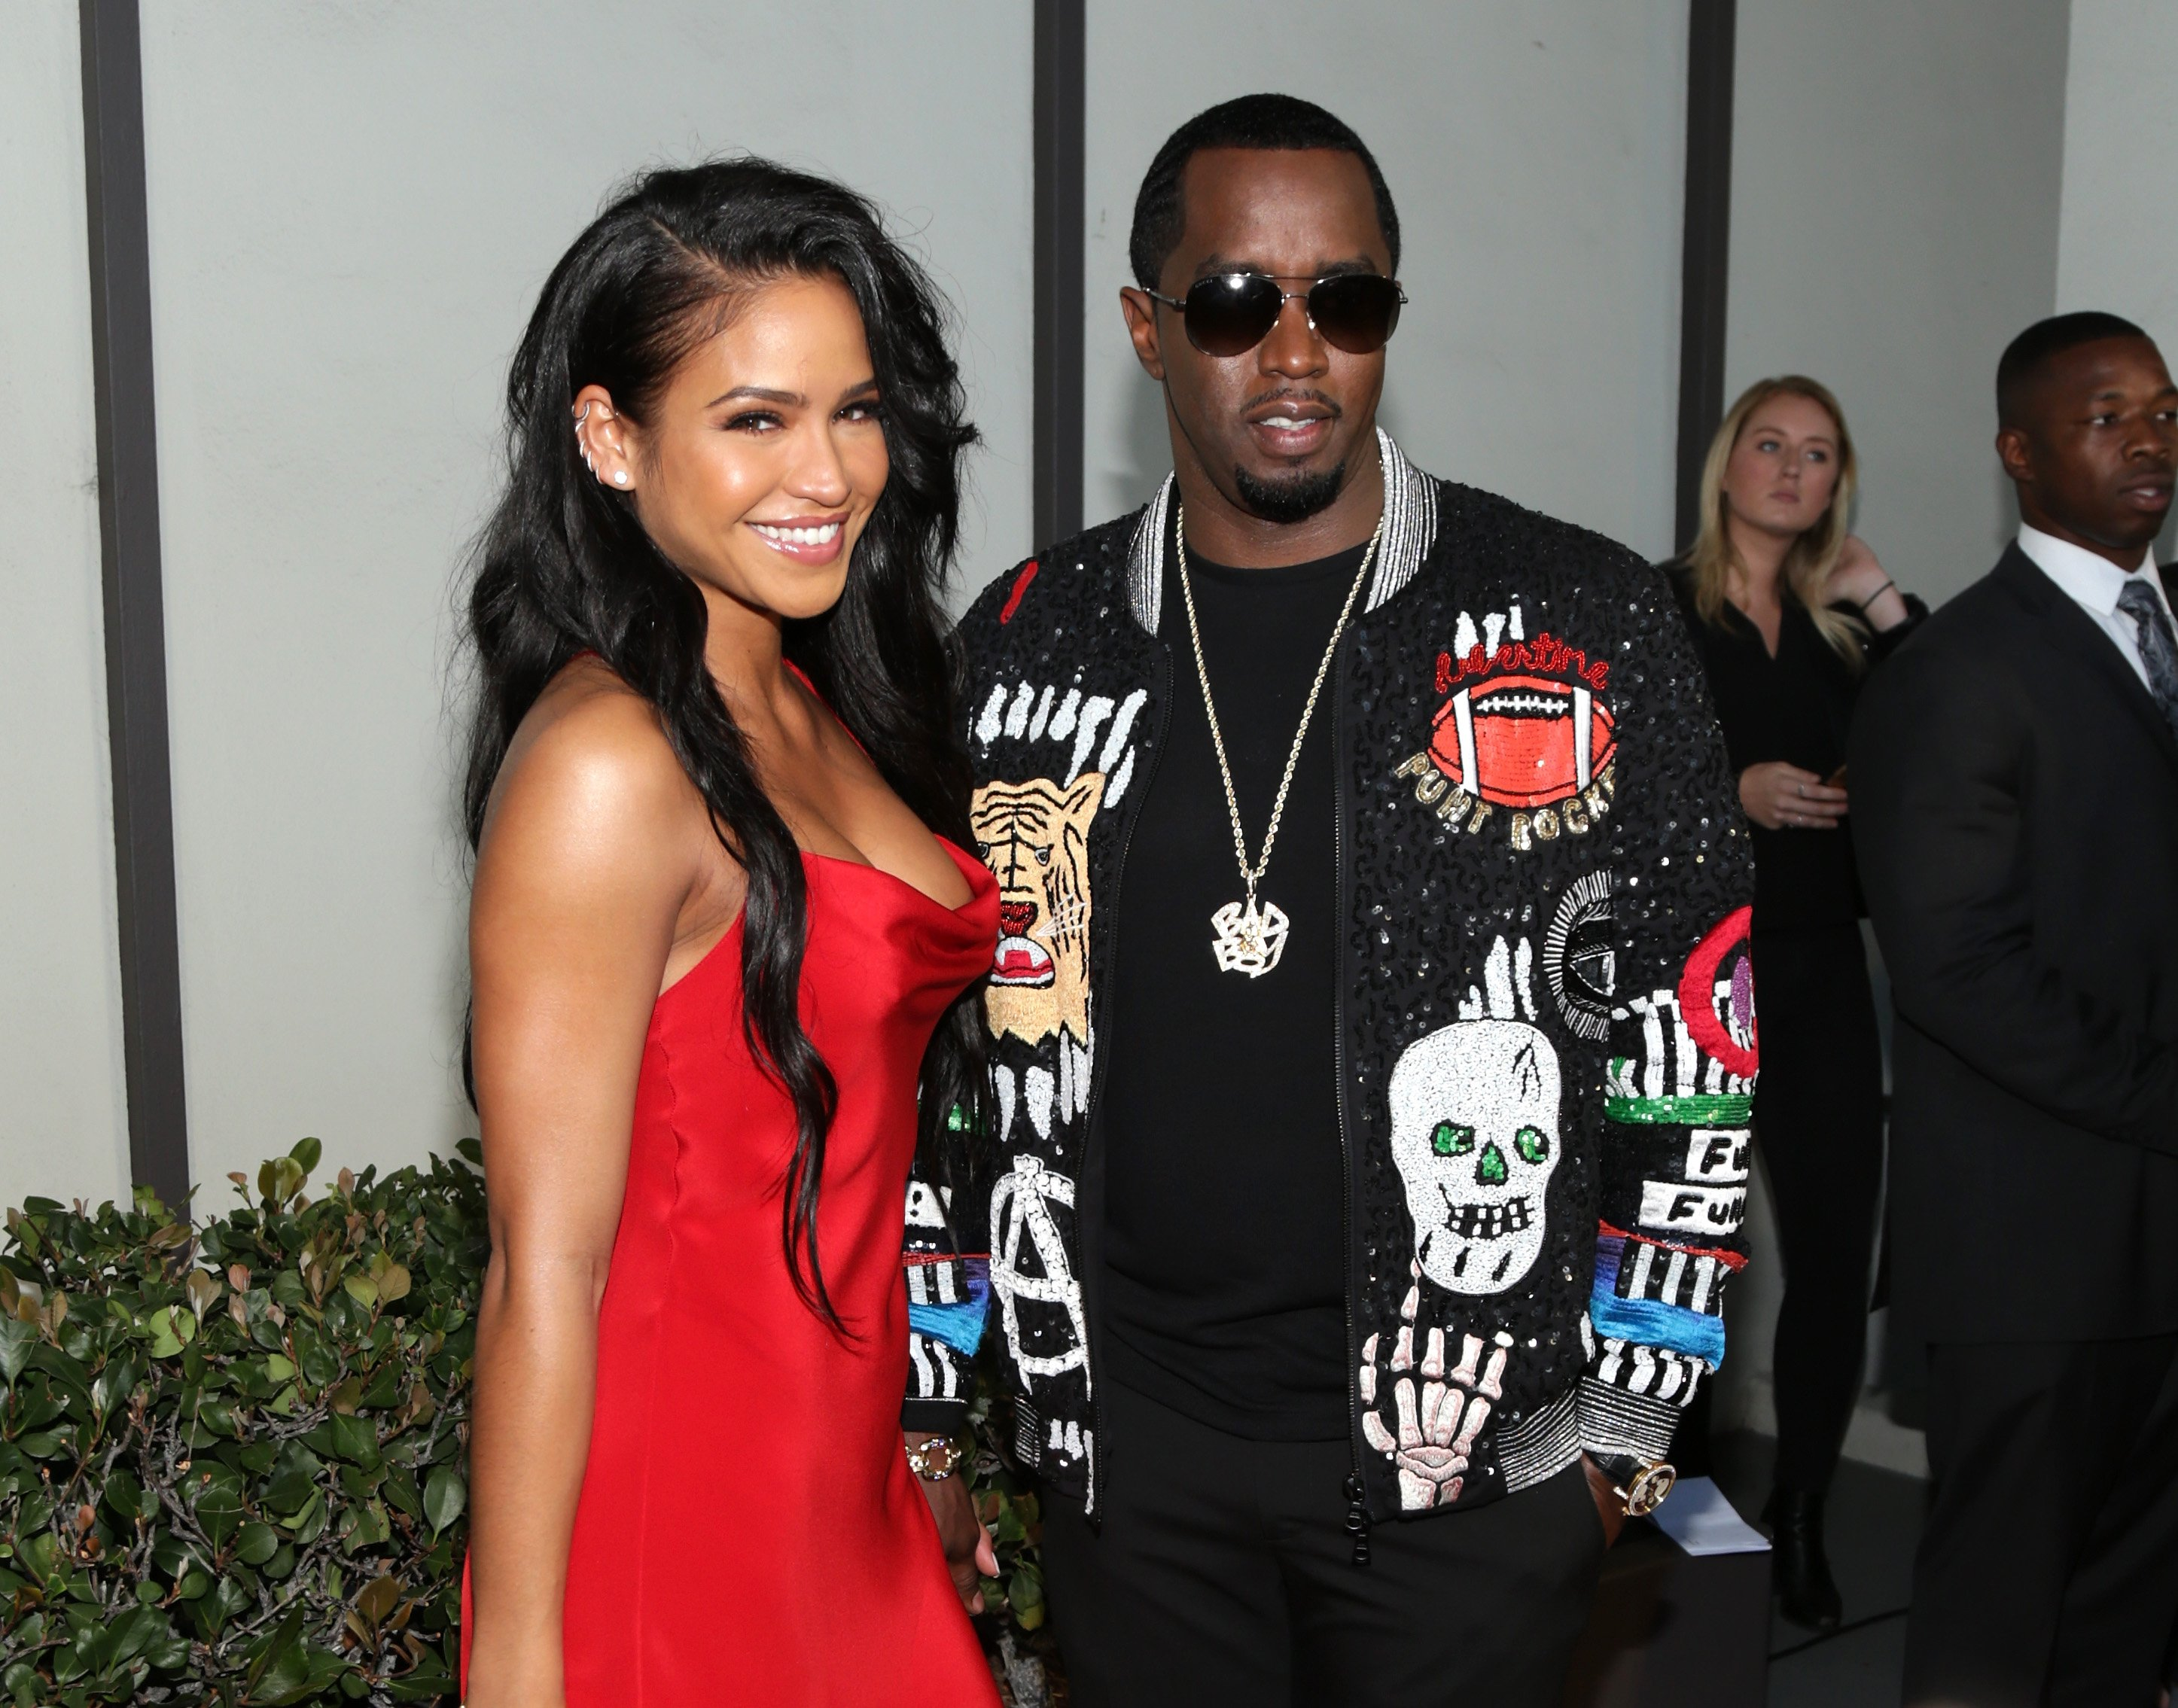 """Cassie and Diddy at the Premiere Of """"Can't Stop Won't Stop"""" in California on June 21, 2017 